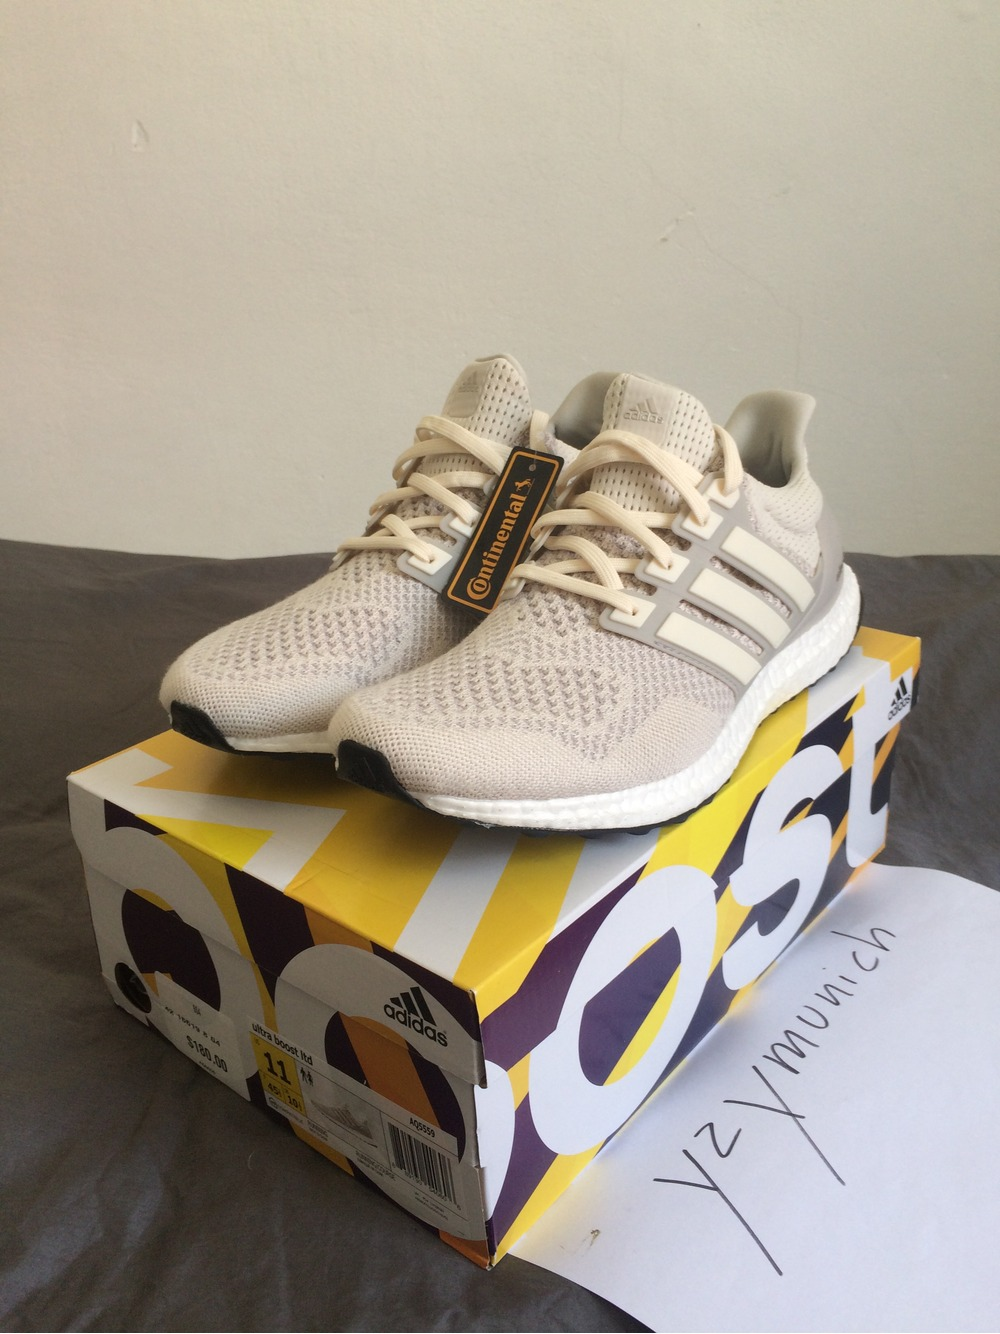 9f21cda374a Adidas Ultra Boost Cream Chalk wallbank-lfc.co.uk